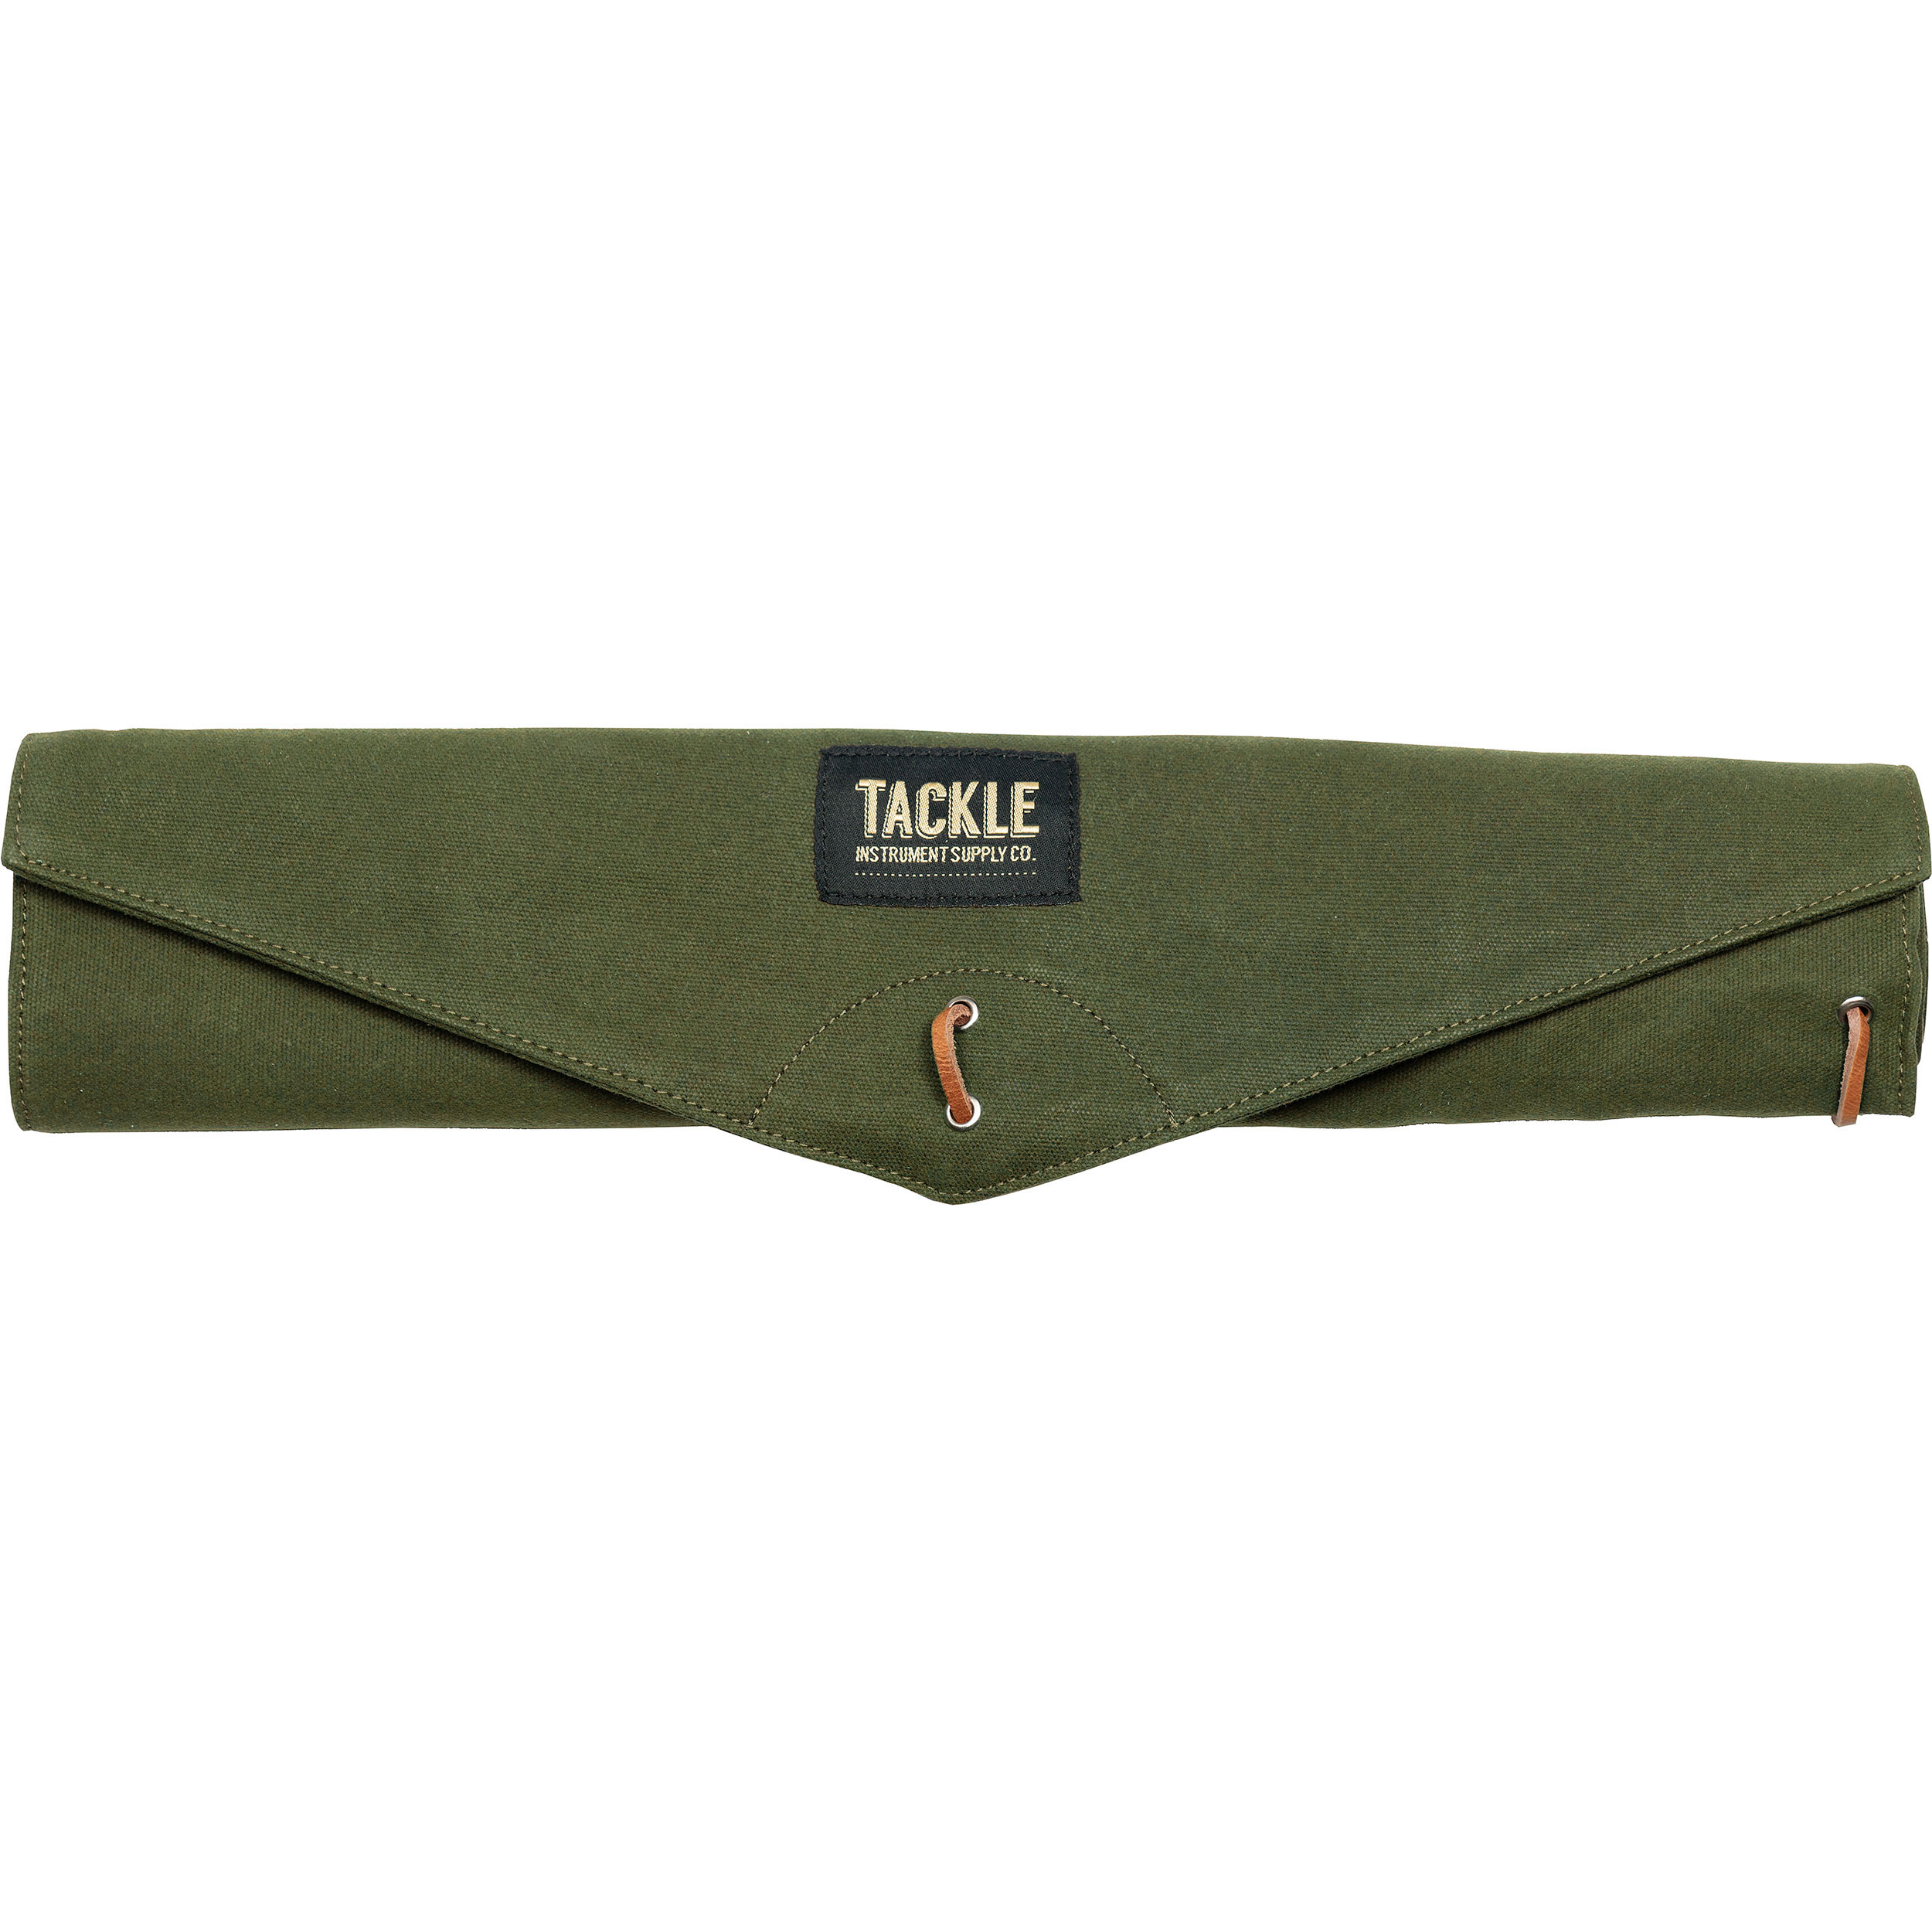 Tackle Instrument Supply Co. Forest Green Waxed Canvas Roll Up Stick Bag